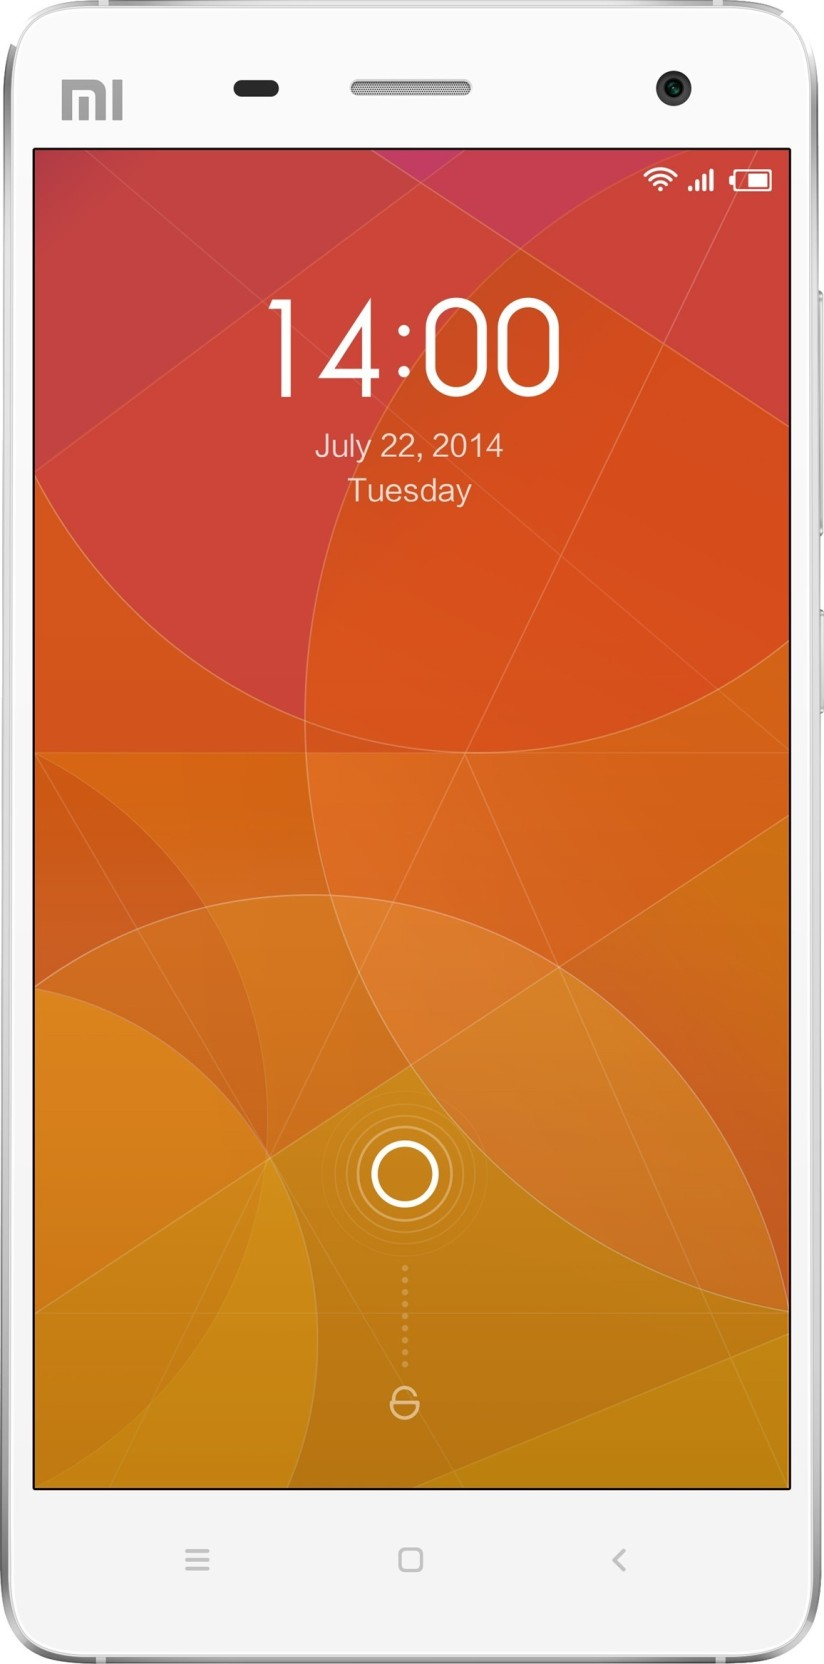 Mi 4 (White, 64 GB) Online at Best Price with Great Offers